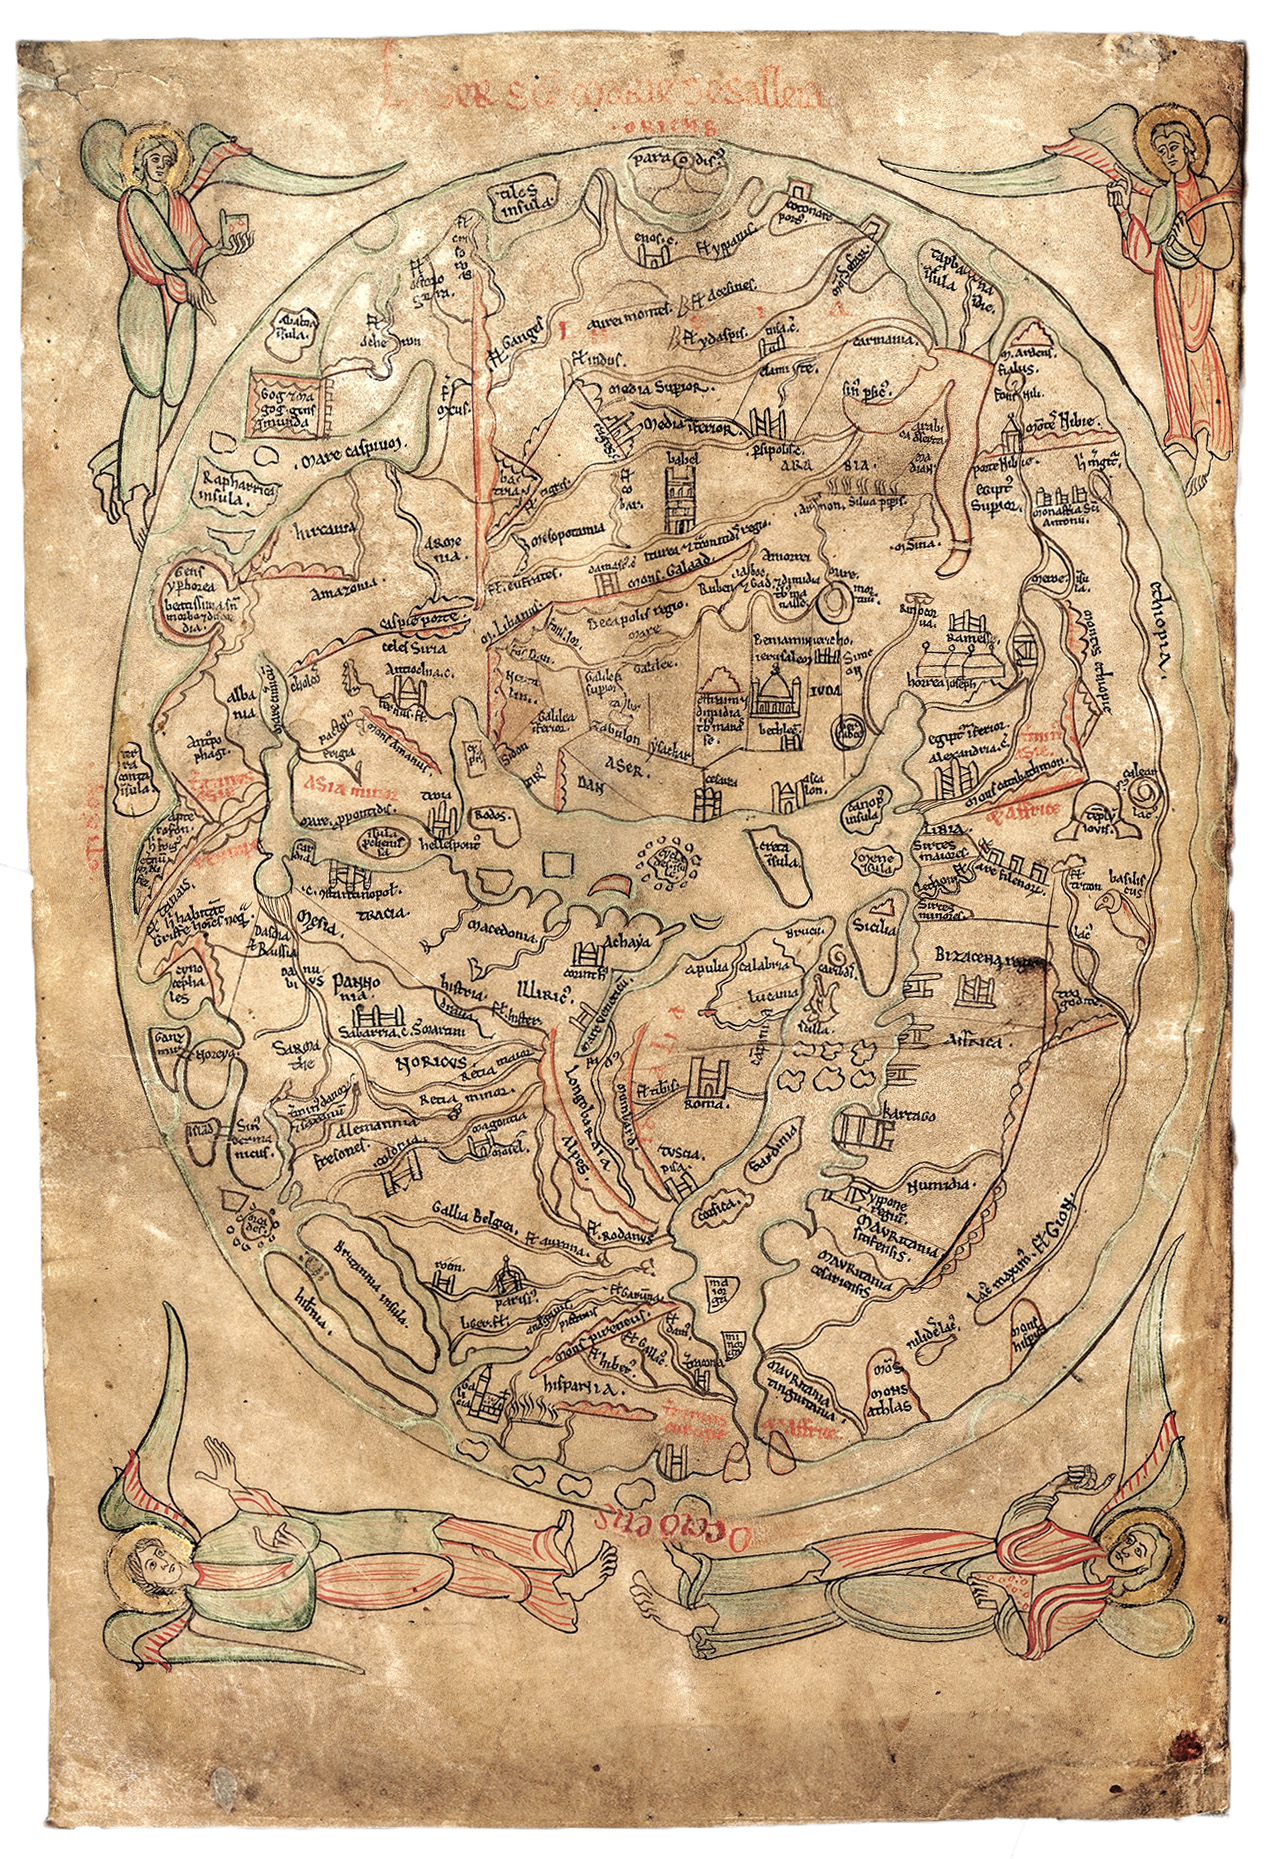 Map Pen And Parchment Drawing In The Middle Ages - Us parchment map